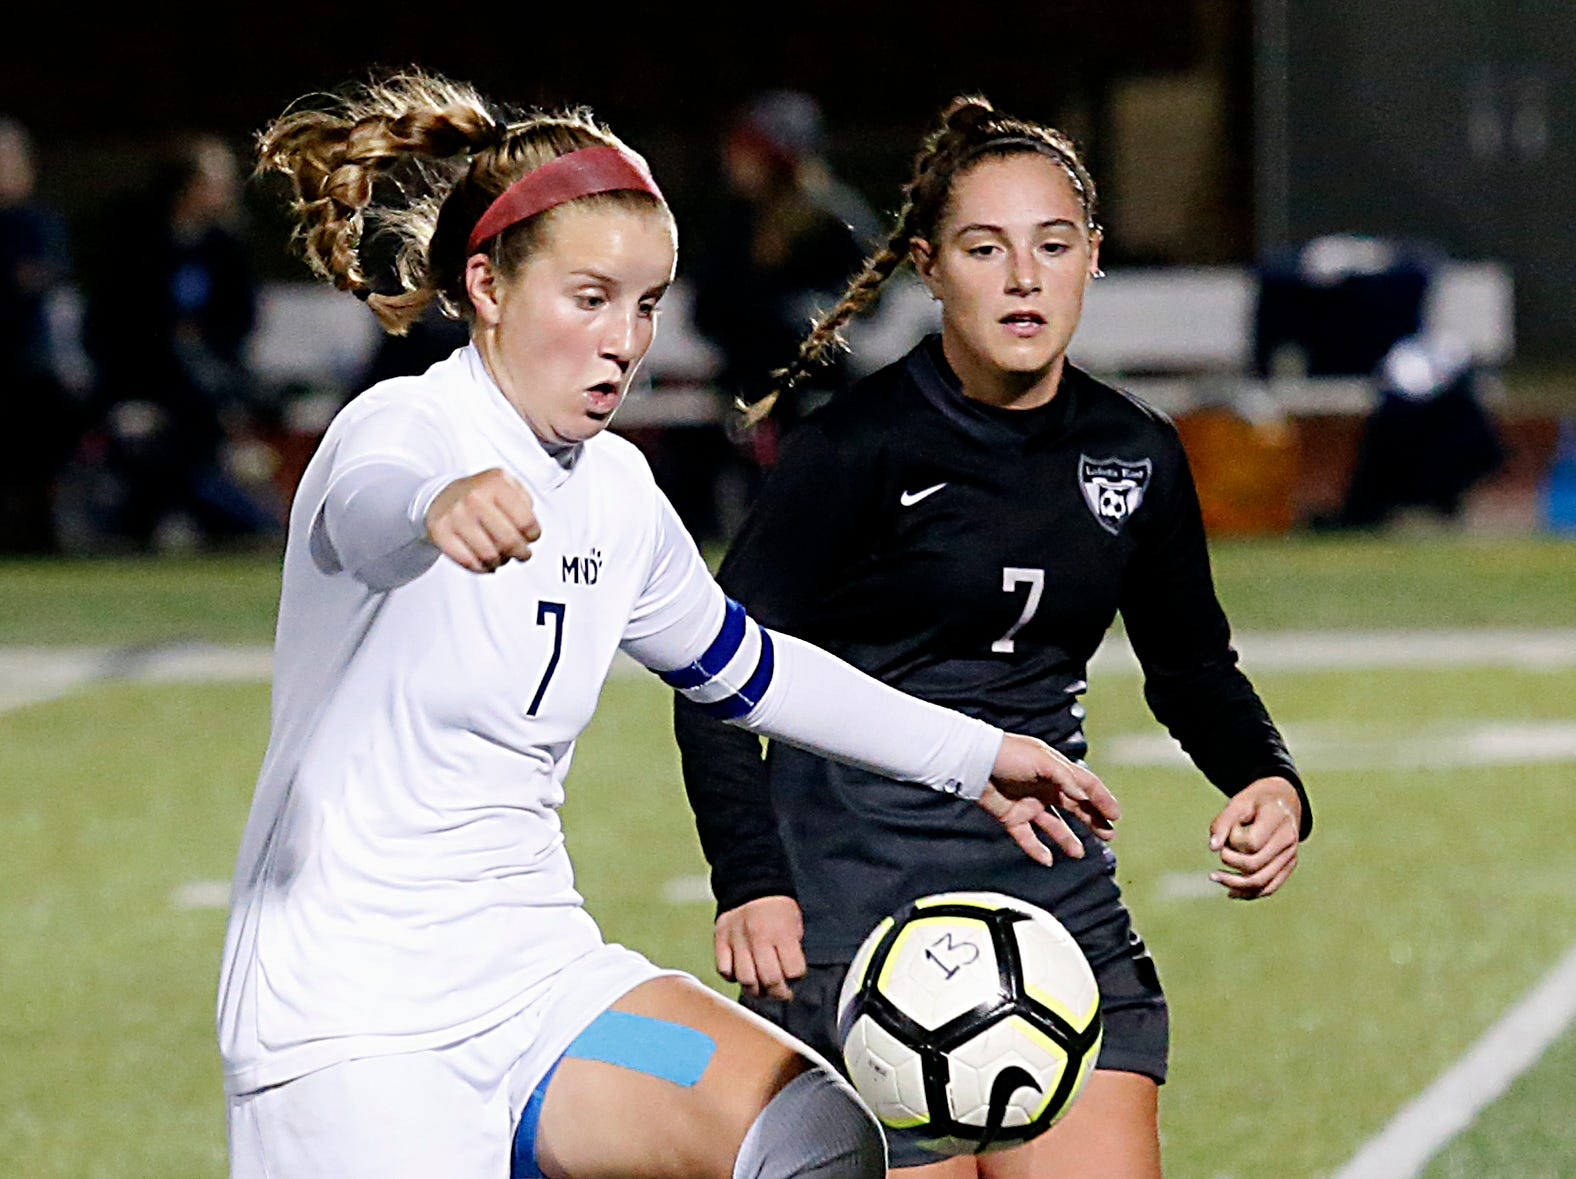 Mount Notre Dame midfielder Becky Dean controls the ball as Lakota East forward Kate Larbes gives chase during their Division I Southwest district final soccer game at Walnut Hills in Cincinnati Saturday, Oct. 27, 2018.